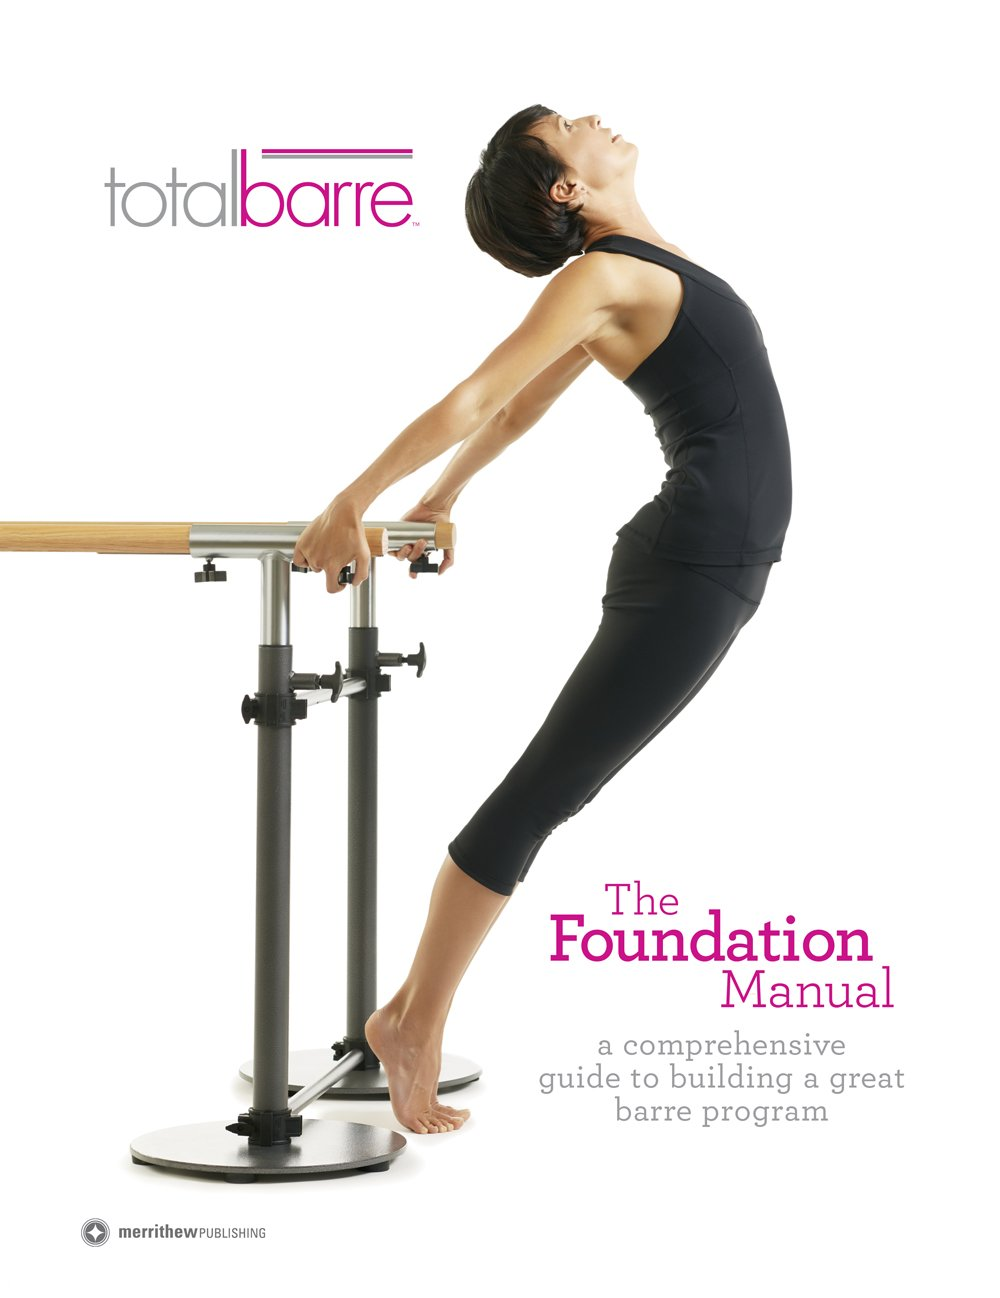 Communication on this topic: GoFit GoBarre Workout Giveaway, gofit-gobarre-workout-giveaway/